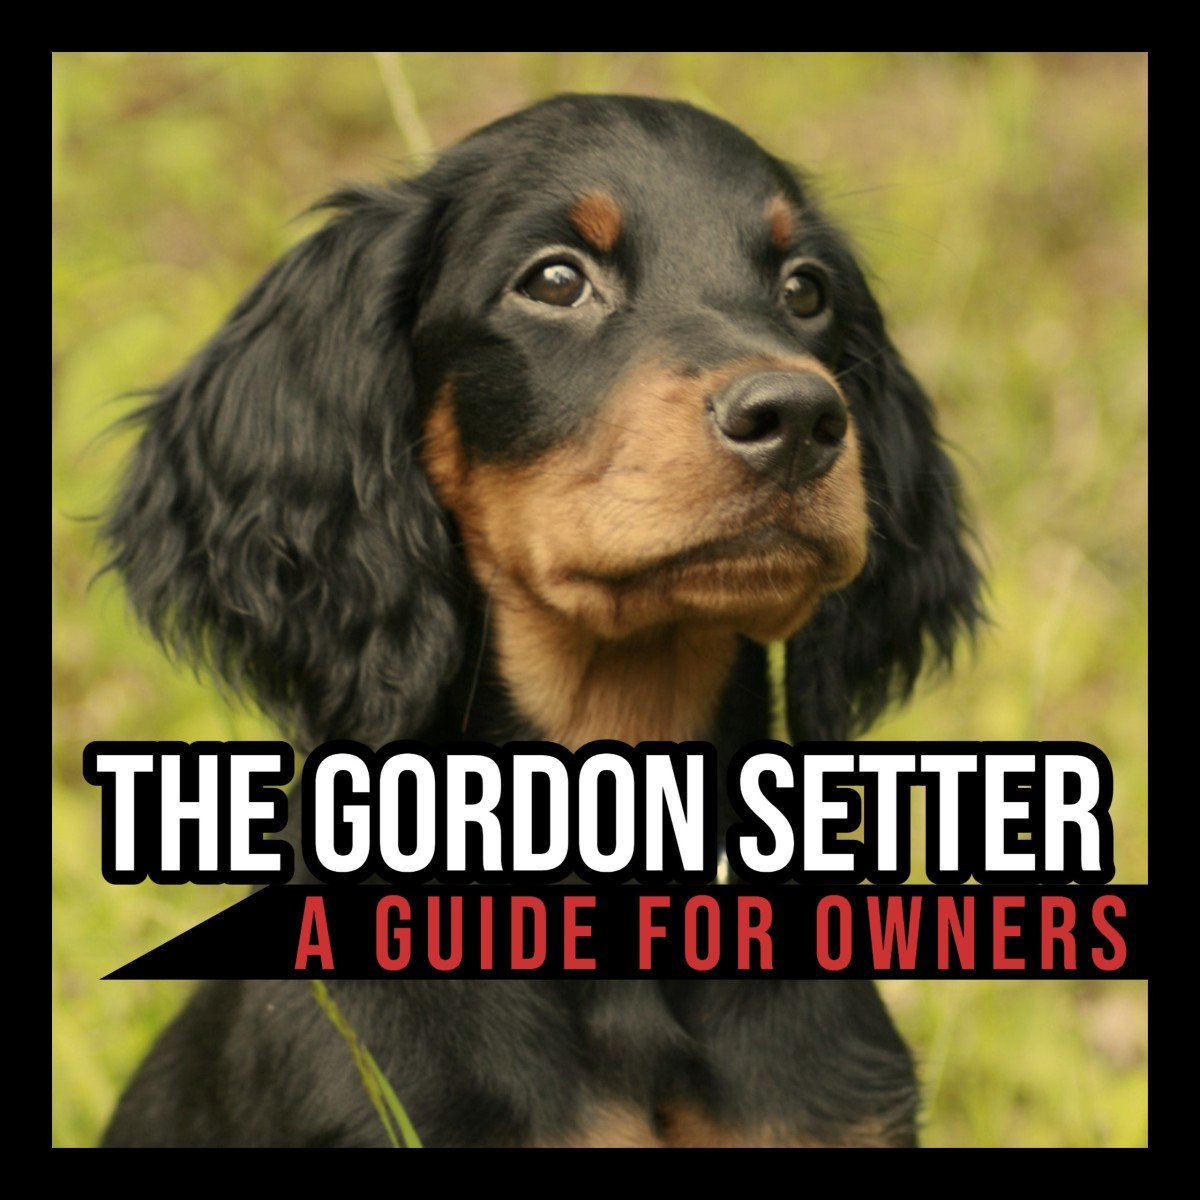 The Gordon Setter: A Guide for Owners